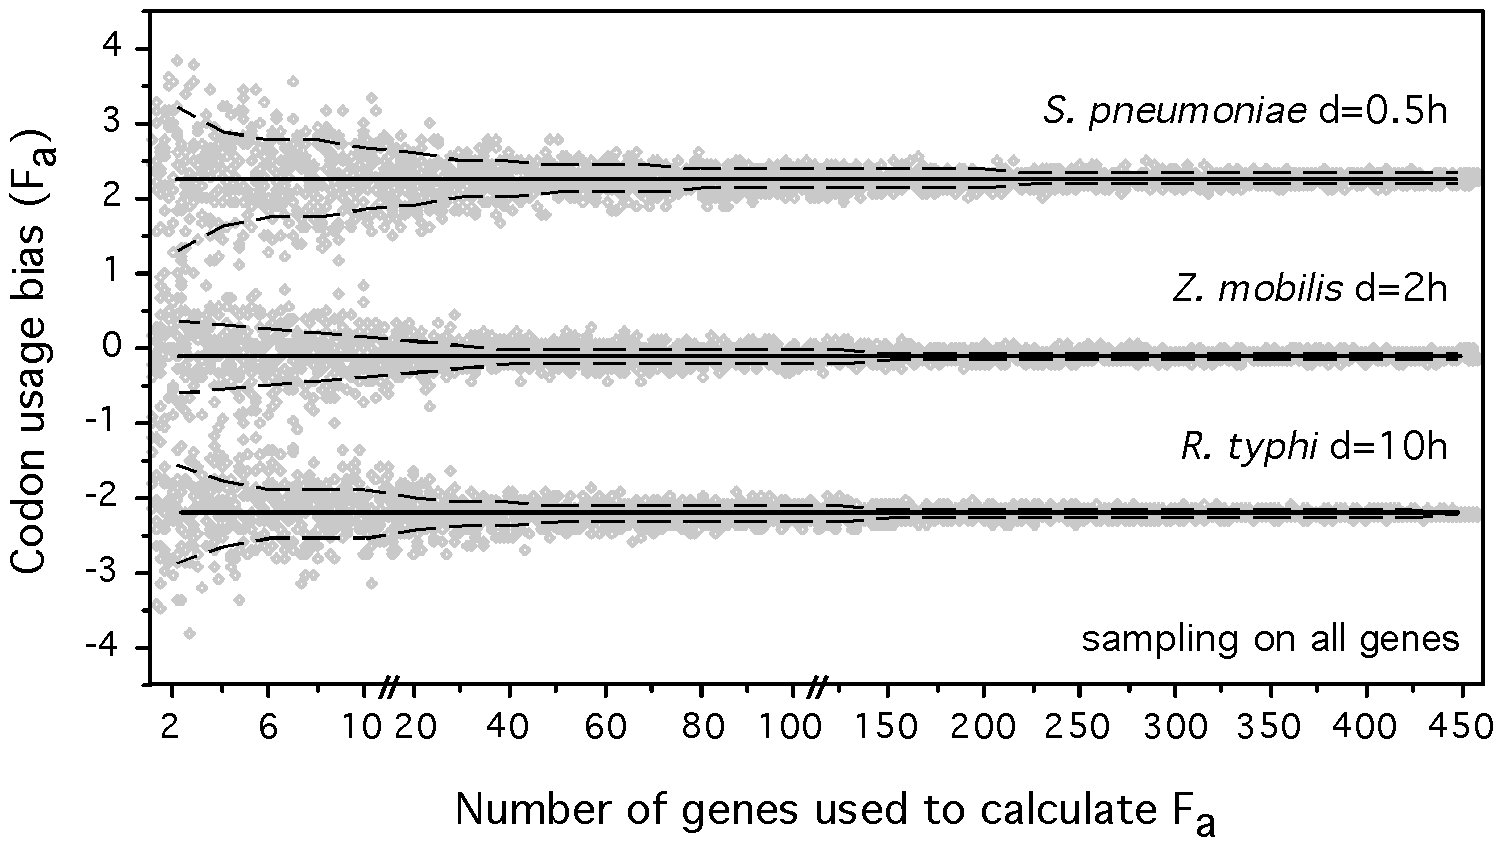 Accuracy of the determination of composite codon usage bias (F<sub>a.</sub>) with varying sample size.